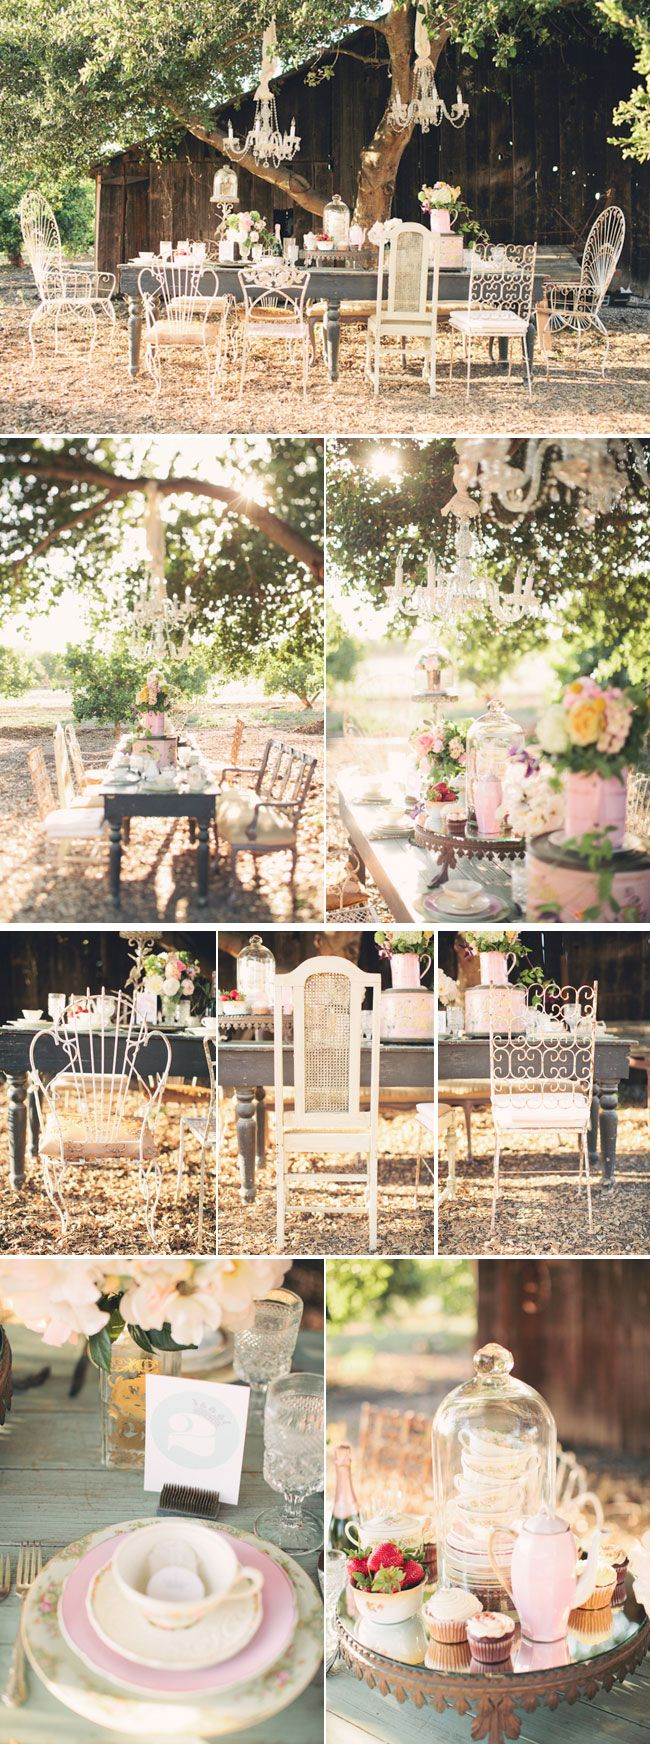 bridal shower teparty decorations%0A Outdoor Styled Dinner Party  Afternoon Tea